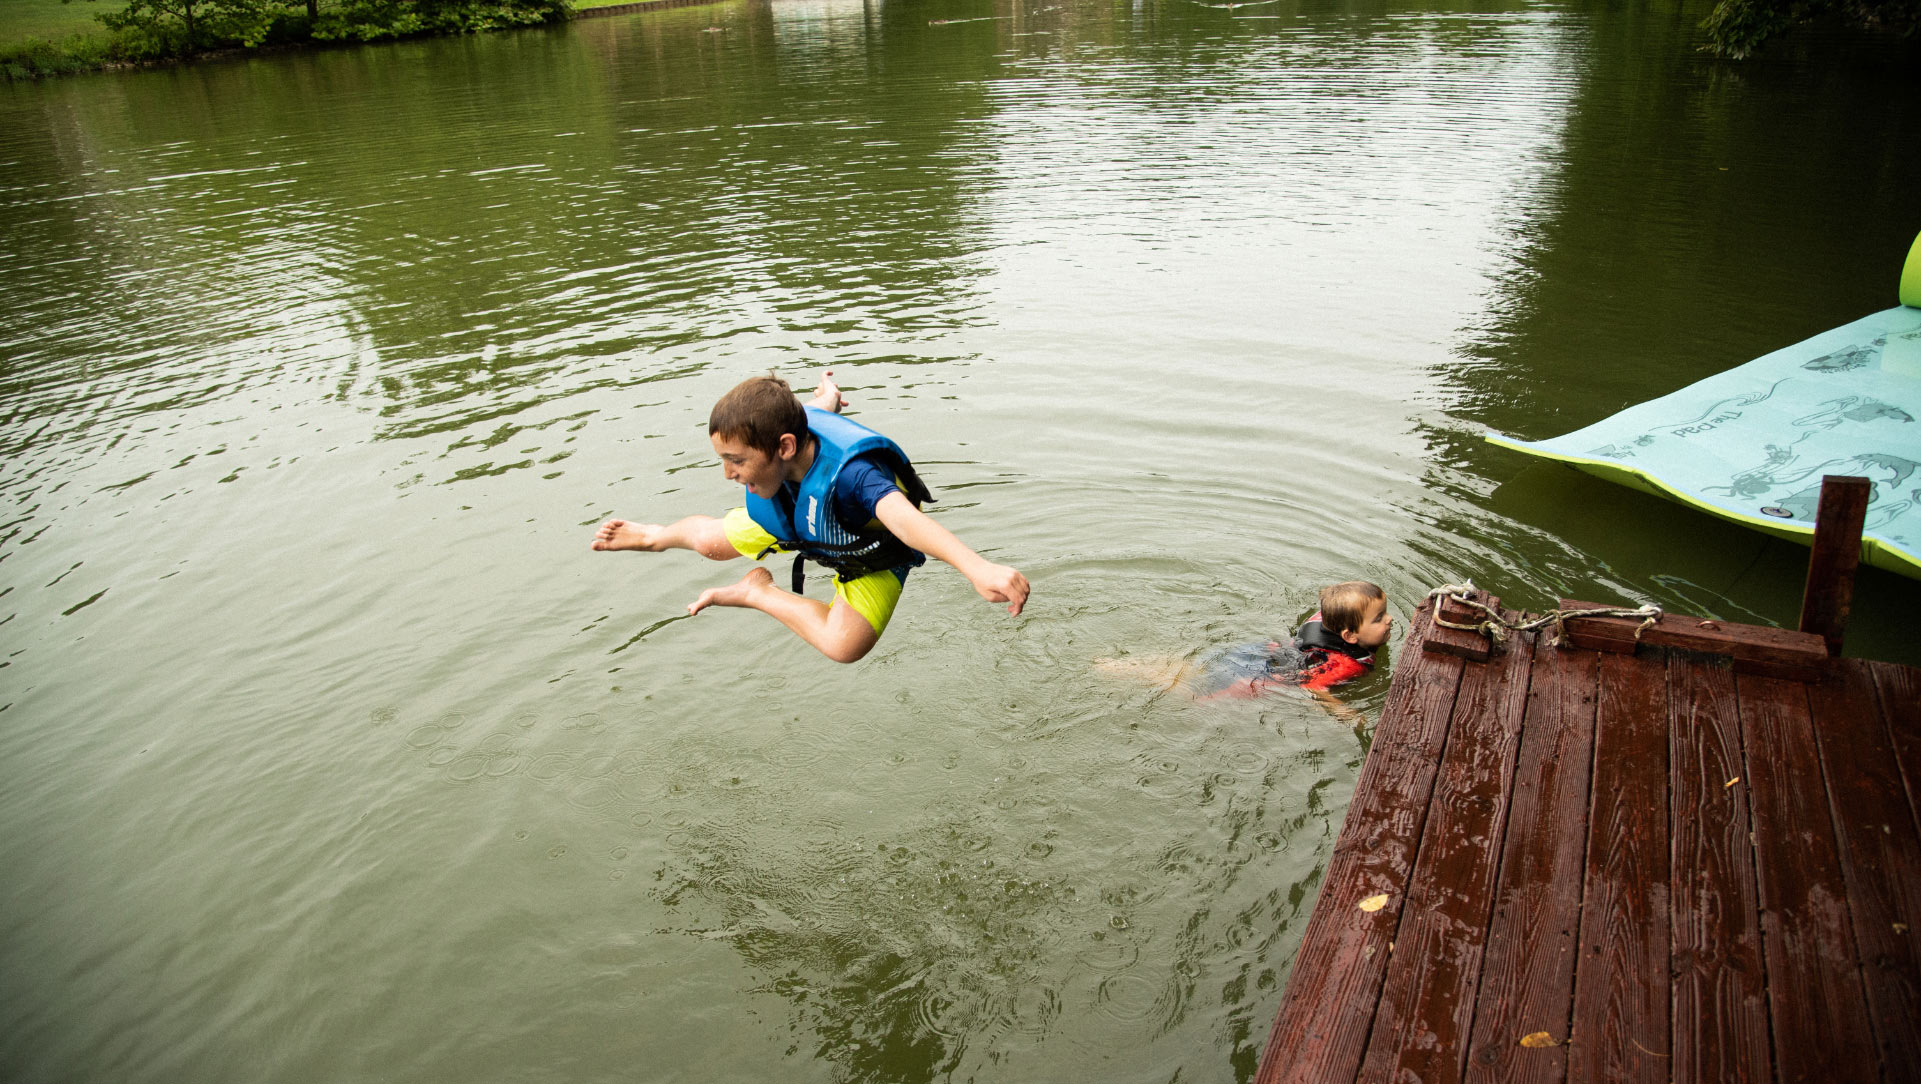 Max, wearing a life jacket, strikes a pose as he jumps off the dock into the lake. His younger brother, also wearing a life jacket, is visible in the lake at the end of the dock.